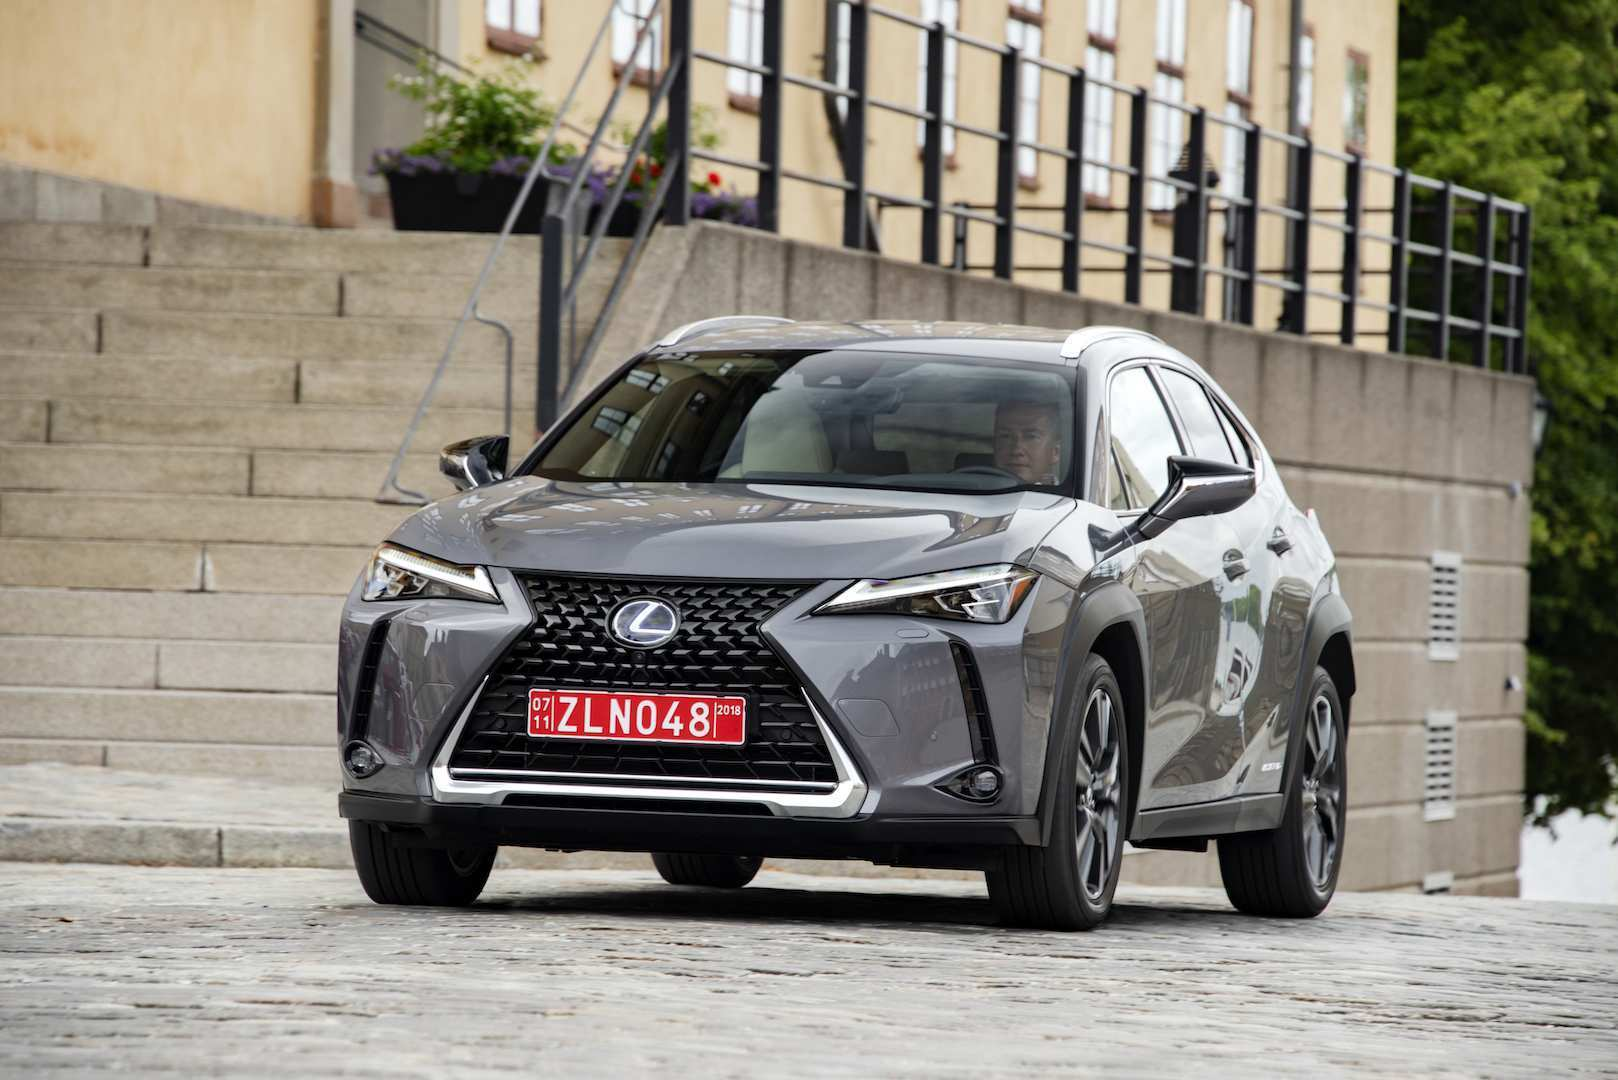 68 Great Lexus Ux 2020 Dimensions Performance and New Engine for Lexus Ux 2020 Dimensions